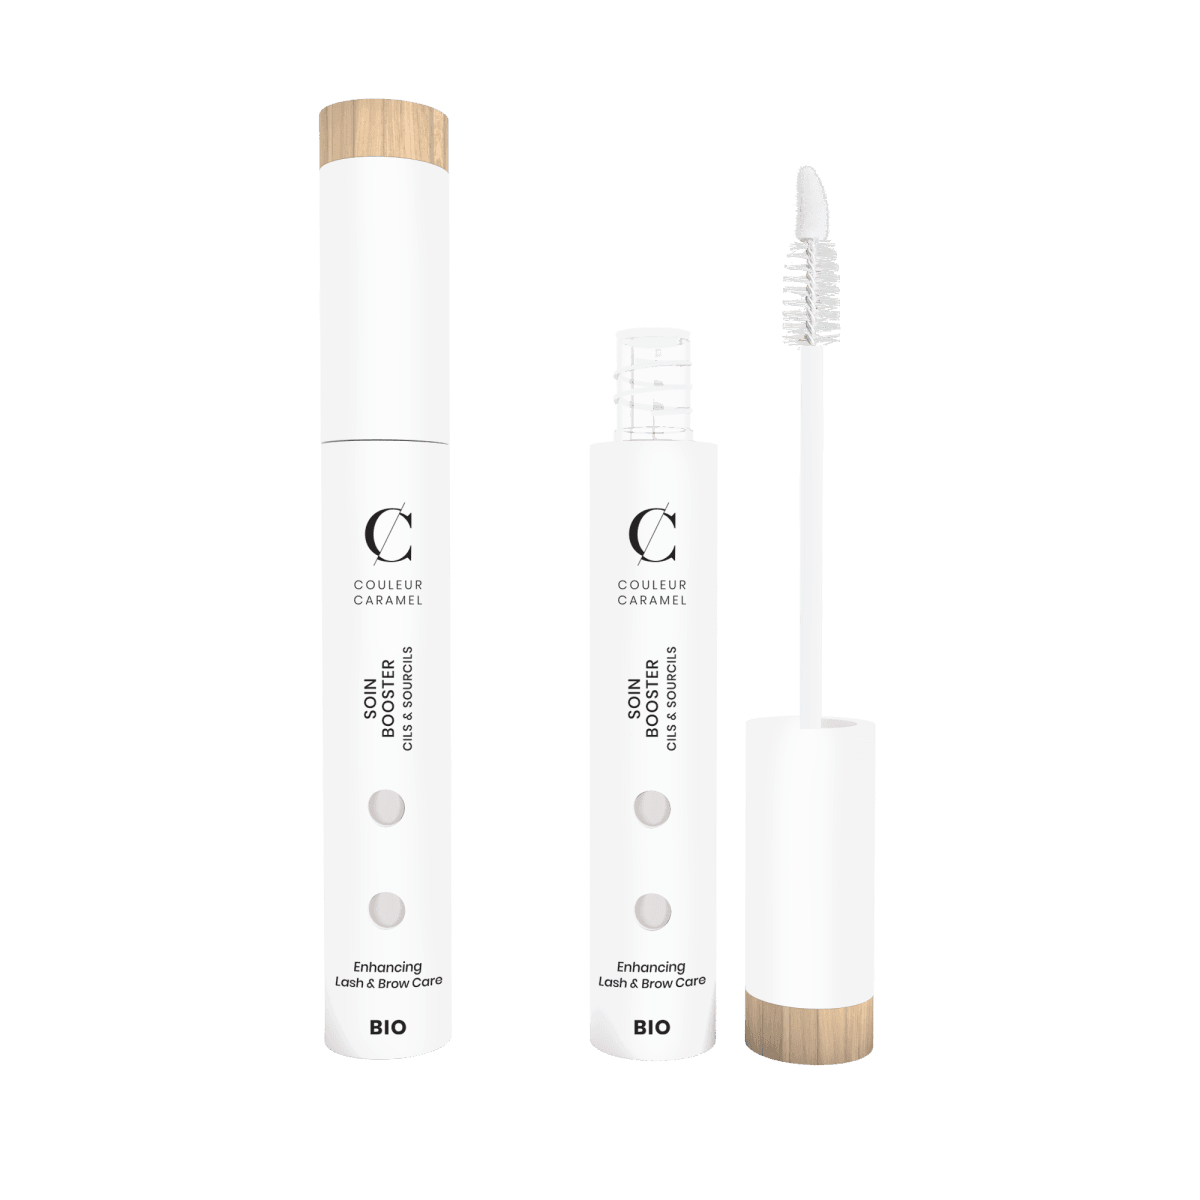 COULEUR CARAMEL Eyelash & Eyebrow Treatment 有機睫毛眉毛修護增生精華 [6ml] - MINT Organics